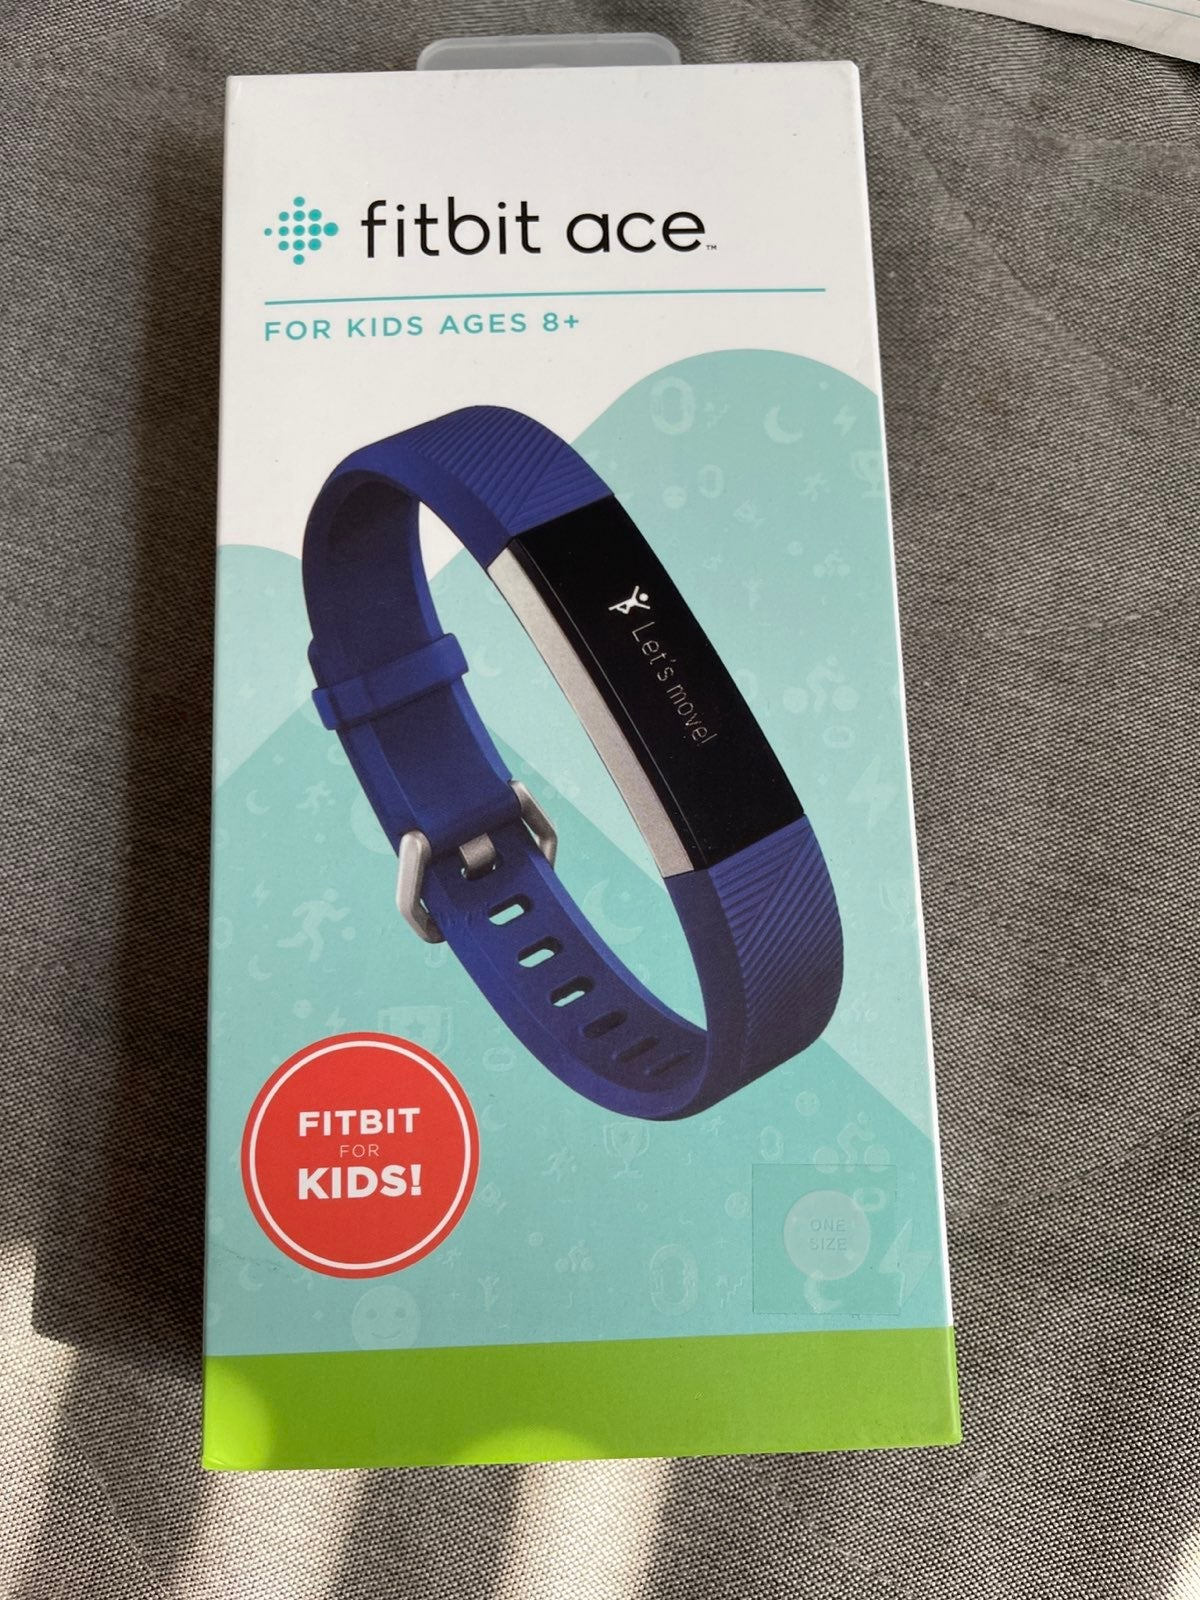 Fitbit ace a FITBIT FOR KIDS! BRAND NEW!